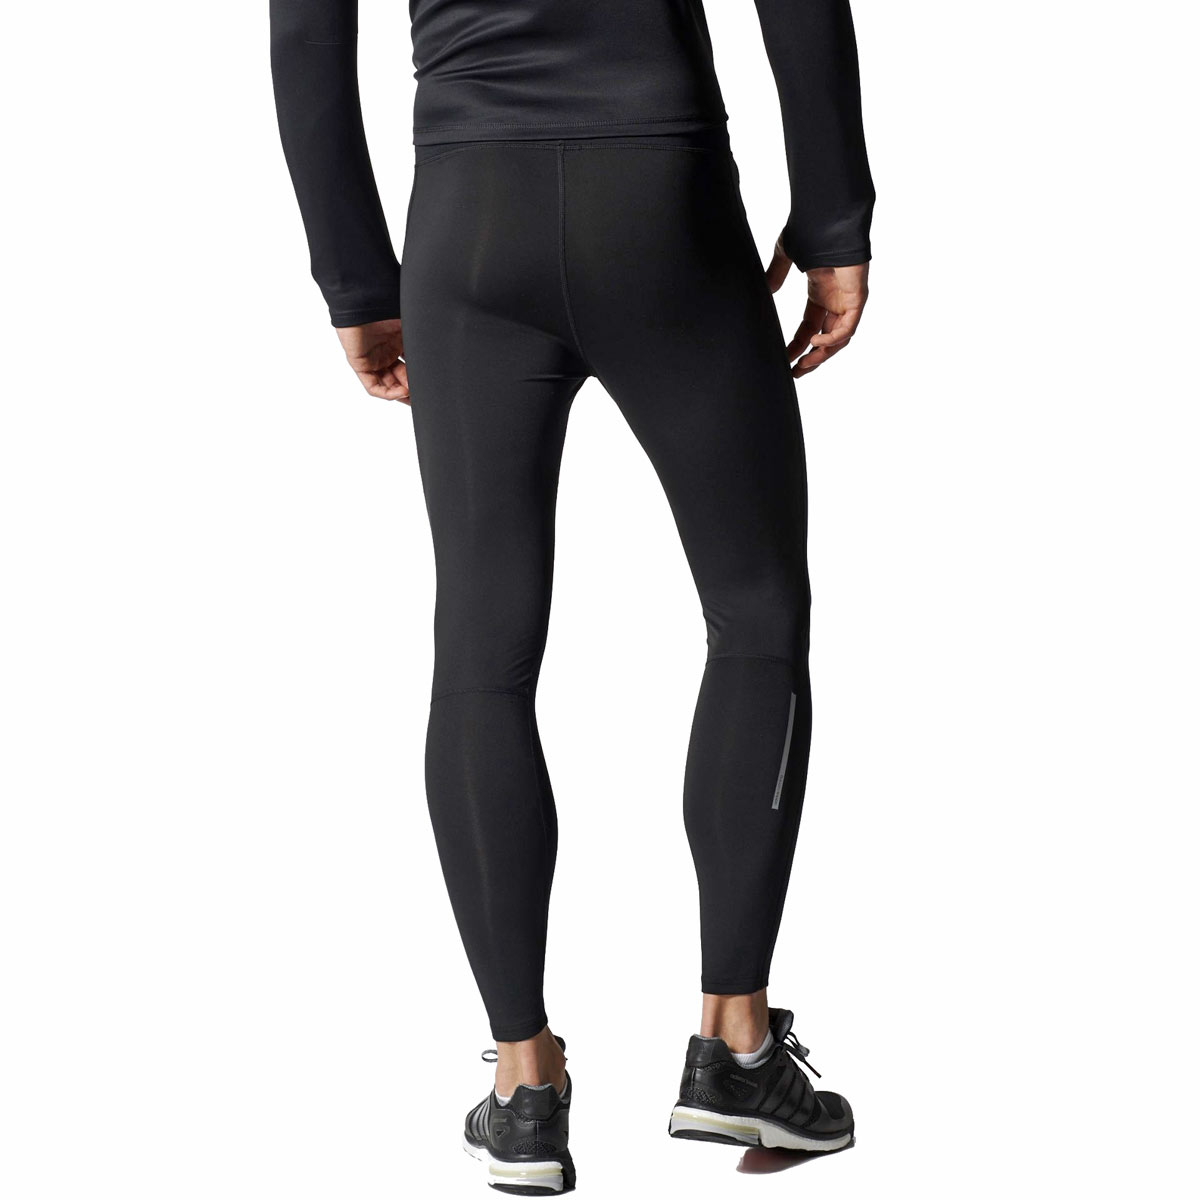 ADIDAS SEQUENCIALS CLIMACOOL RUNNING TIGHTS Herren Laufhose Sporthose S10058